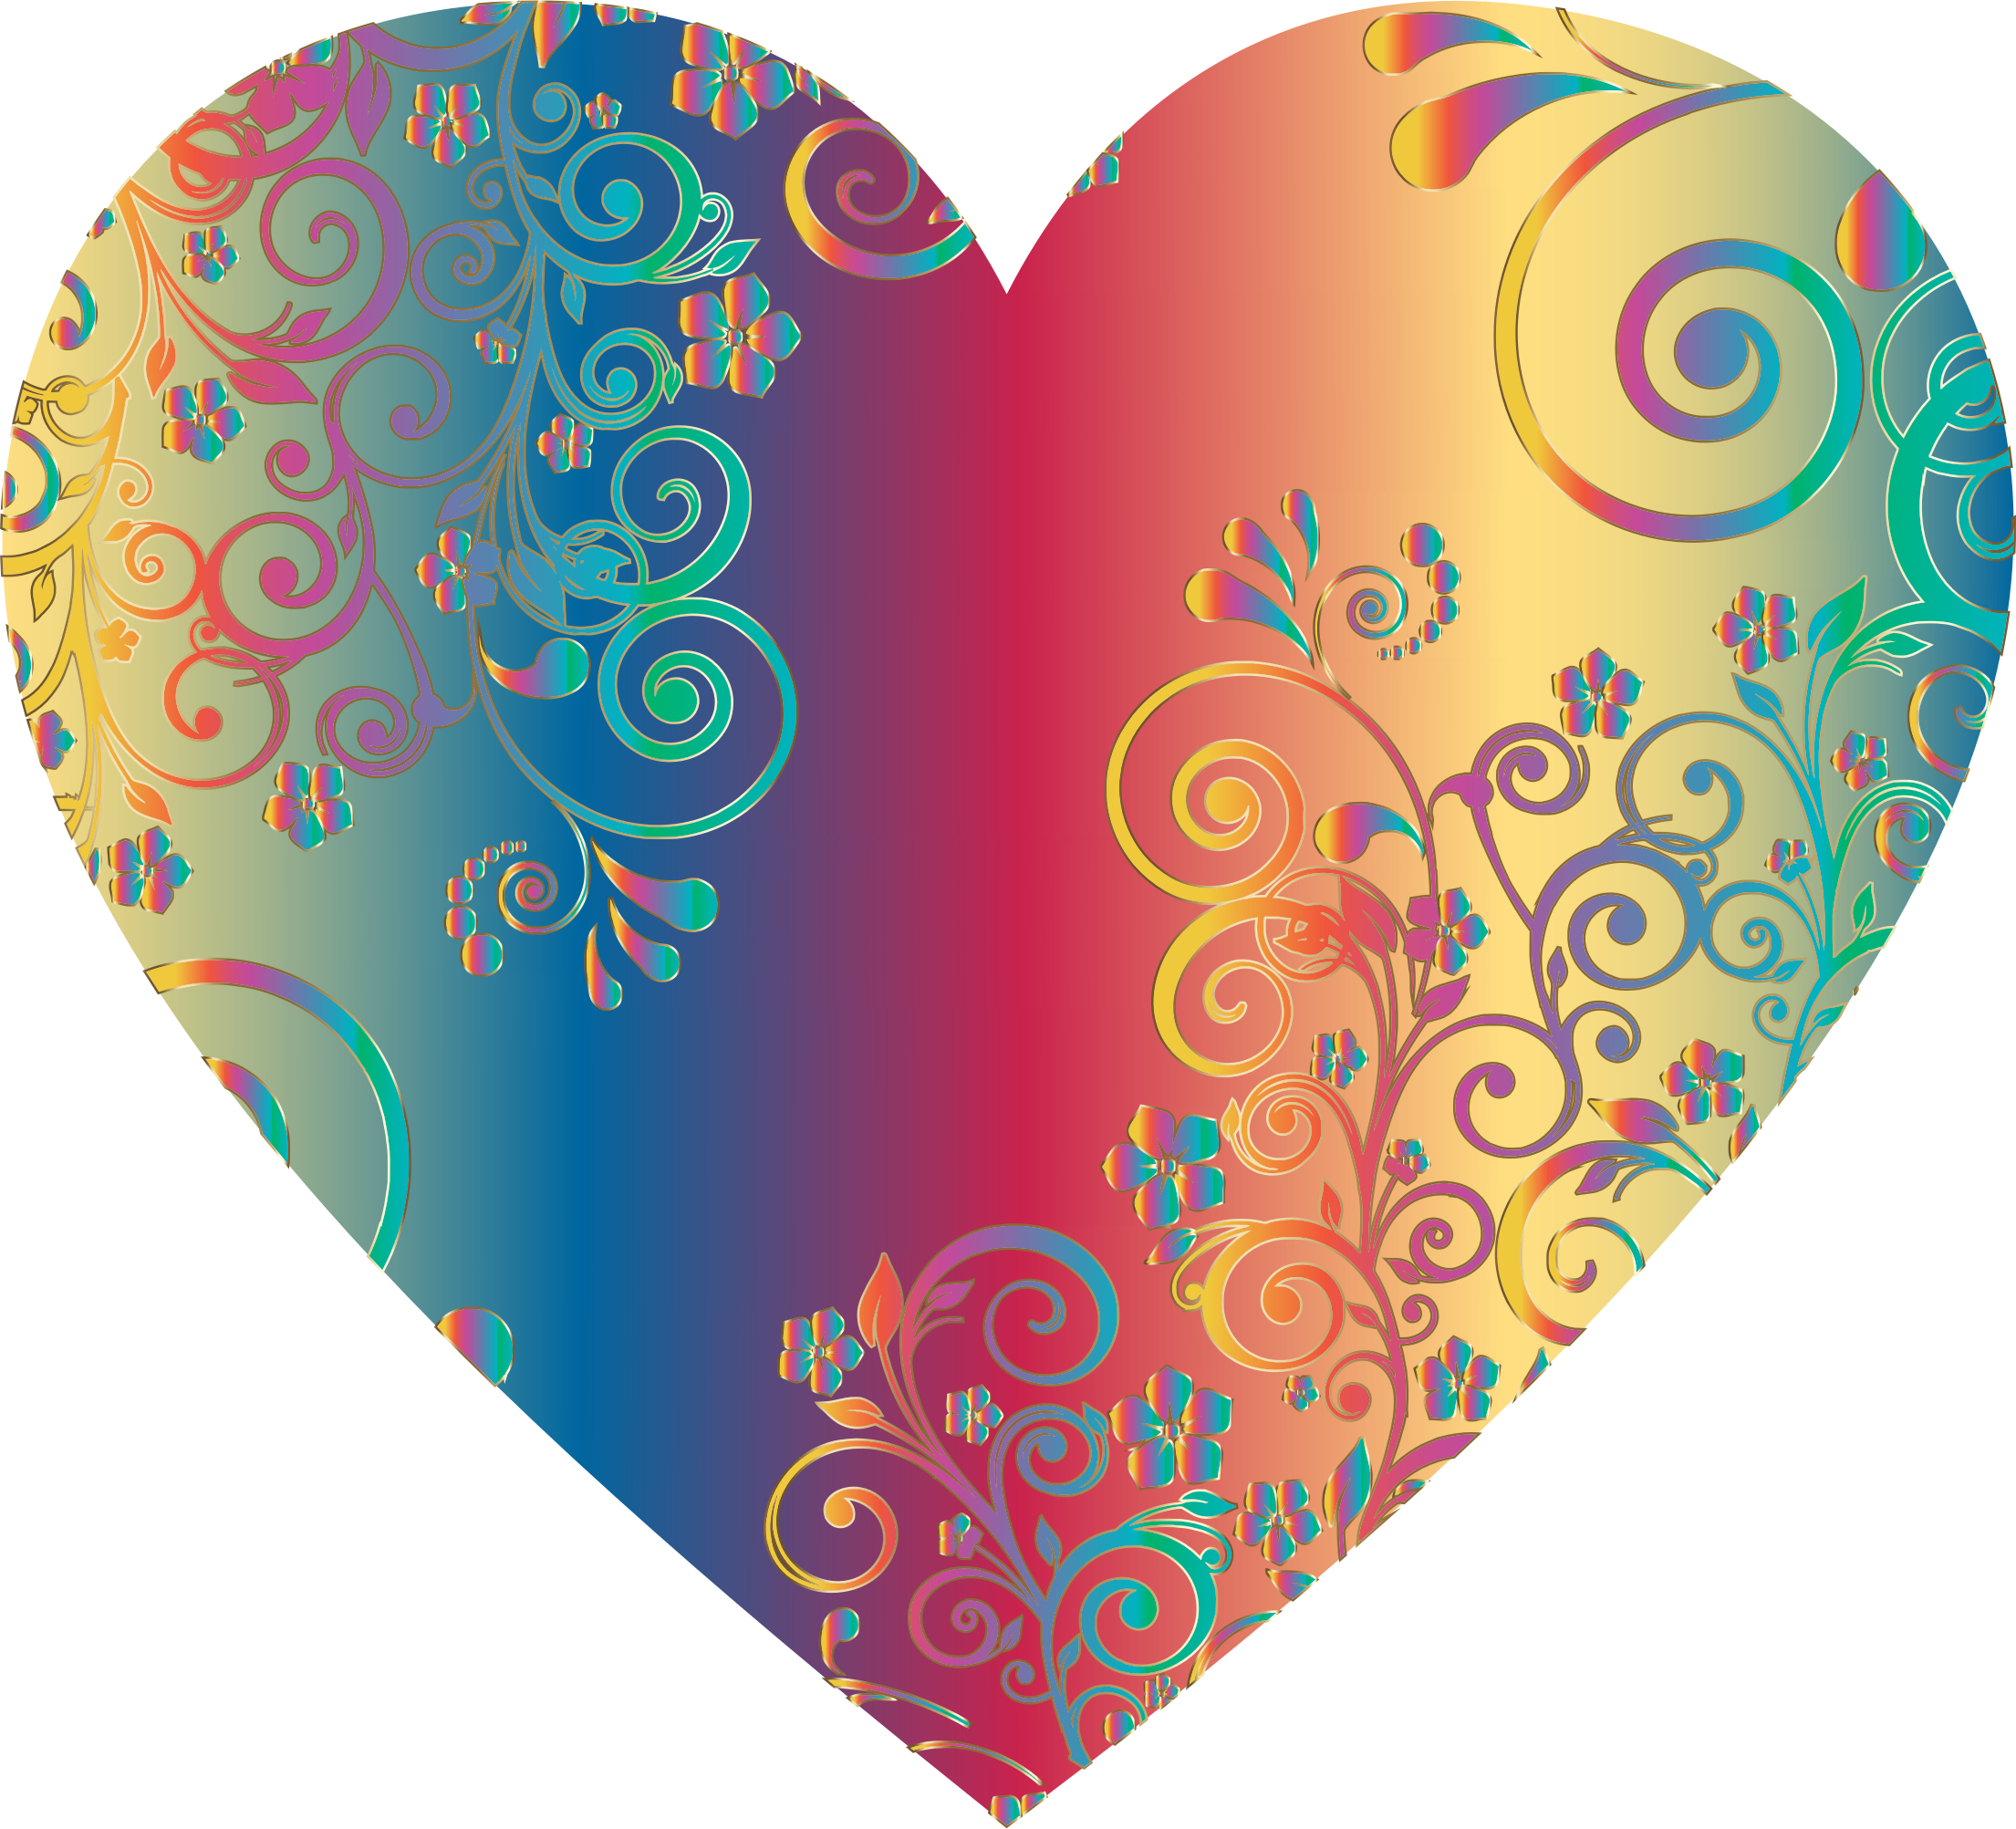 Prismatic Floral Flourish Heart 10 by GDJ